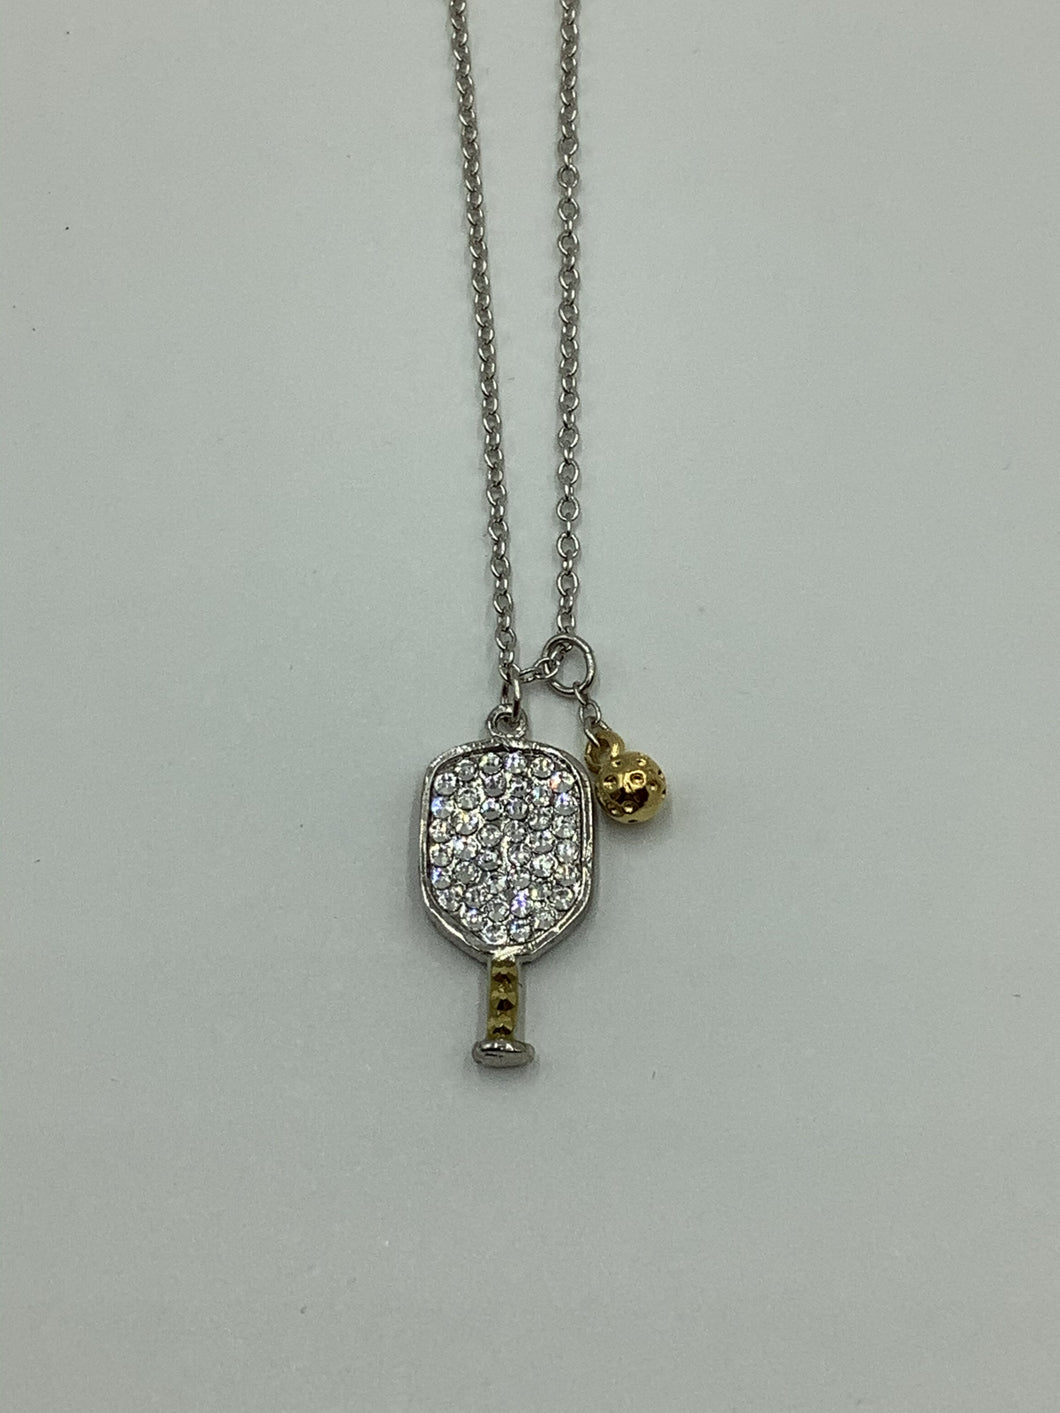 Emily Austin Gold Necklace with Large Crystal Pickleball Paddle